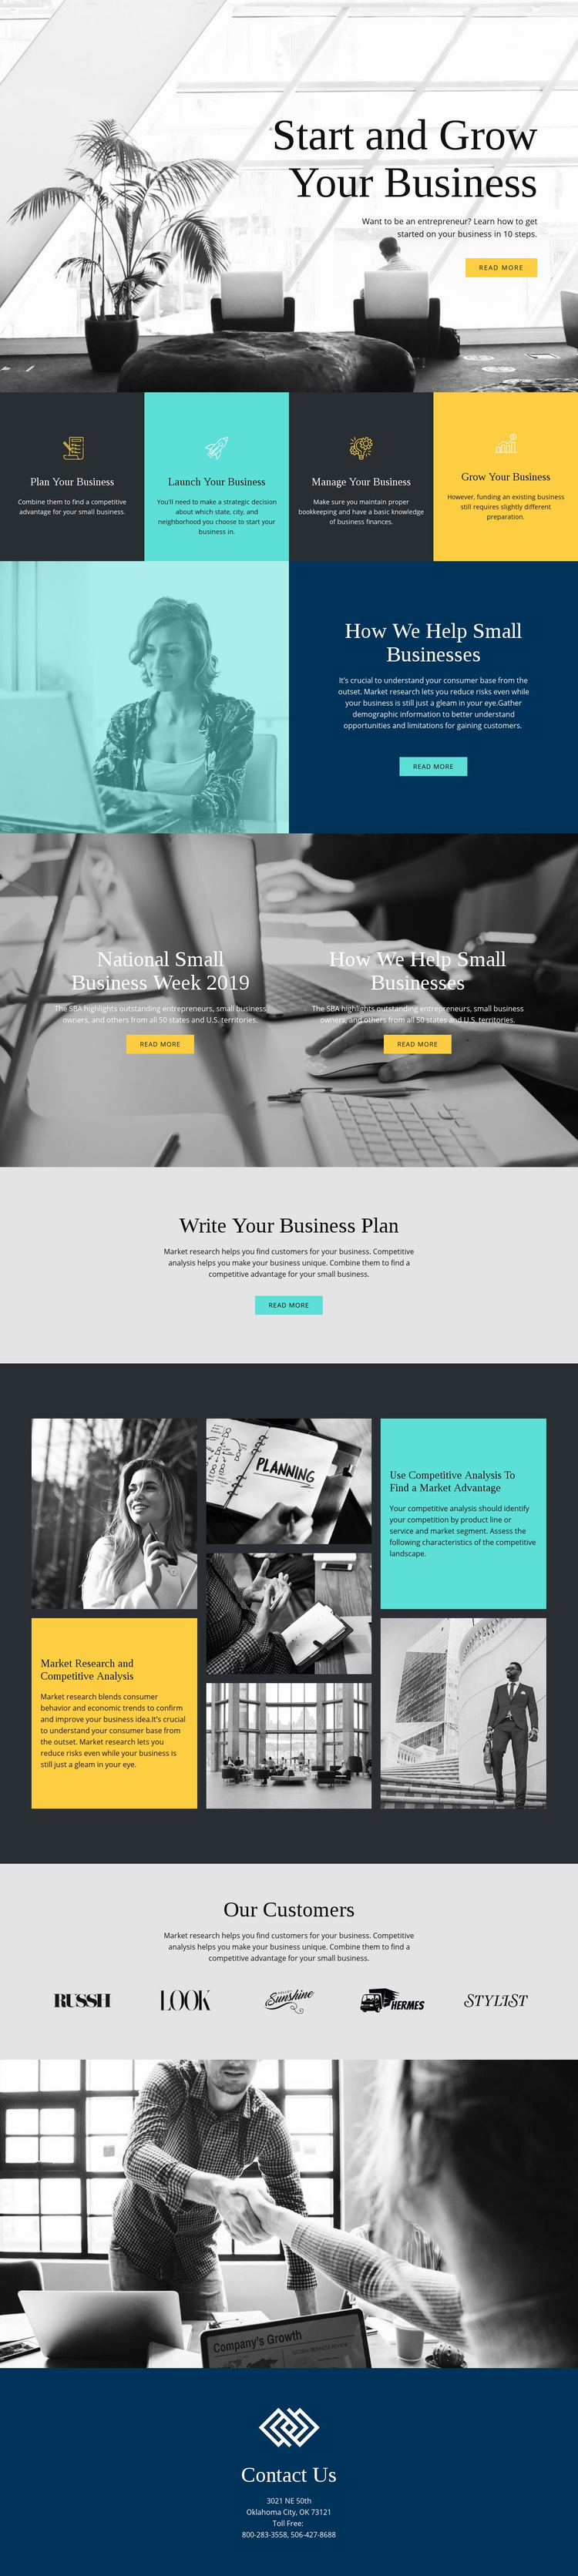 Start and grow your business Web Page Design